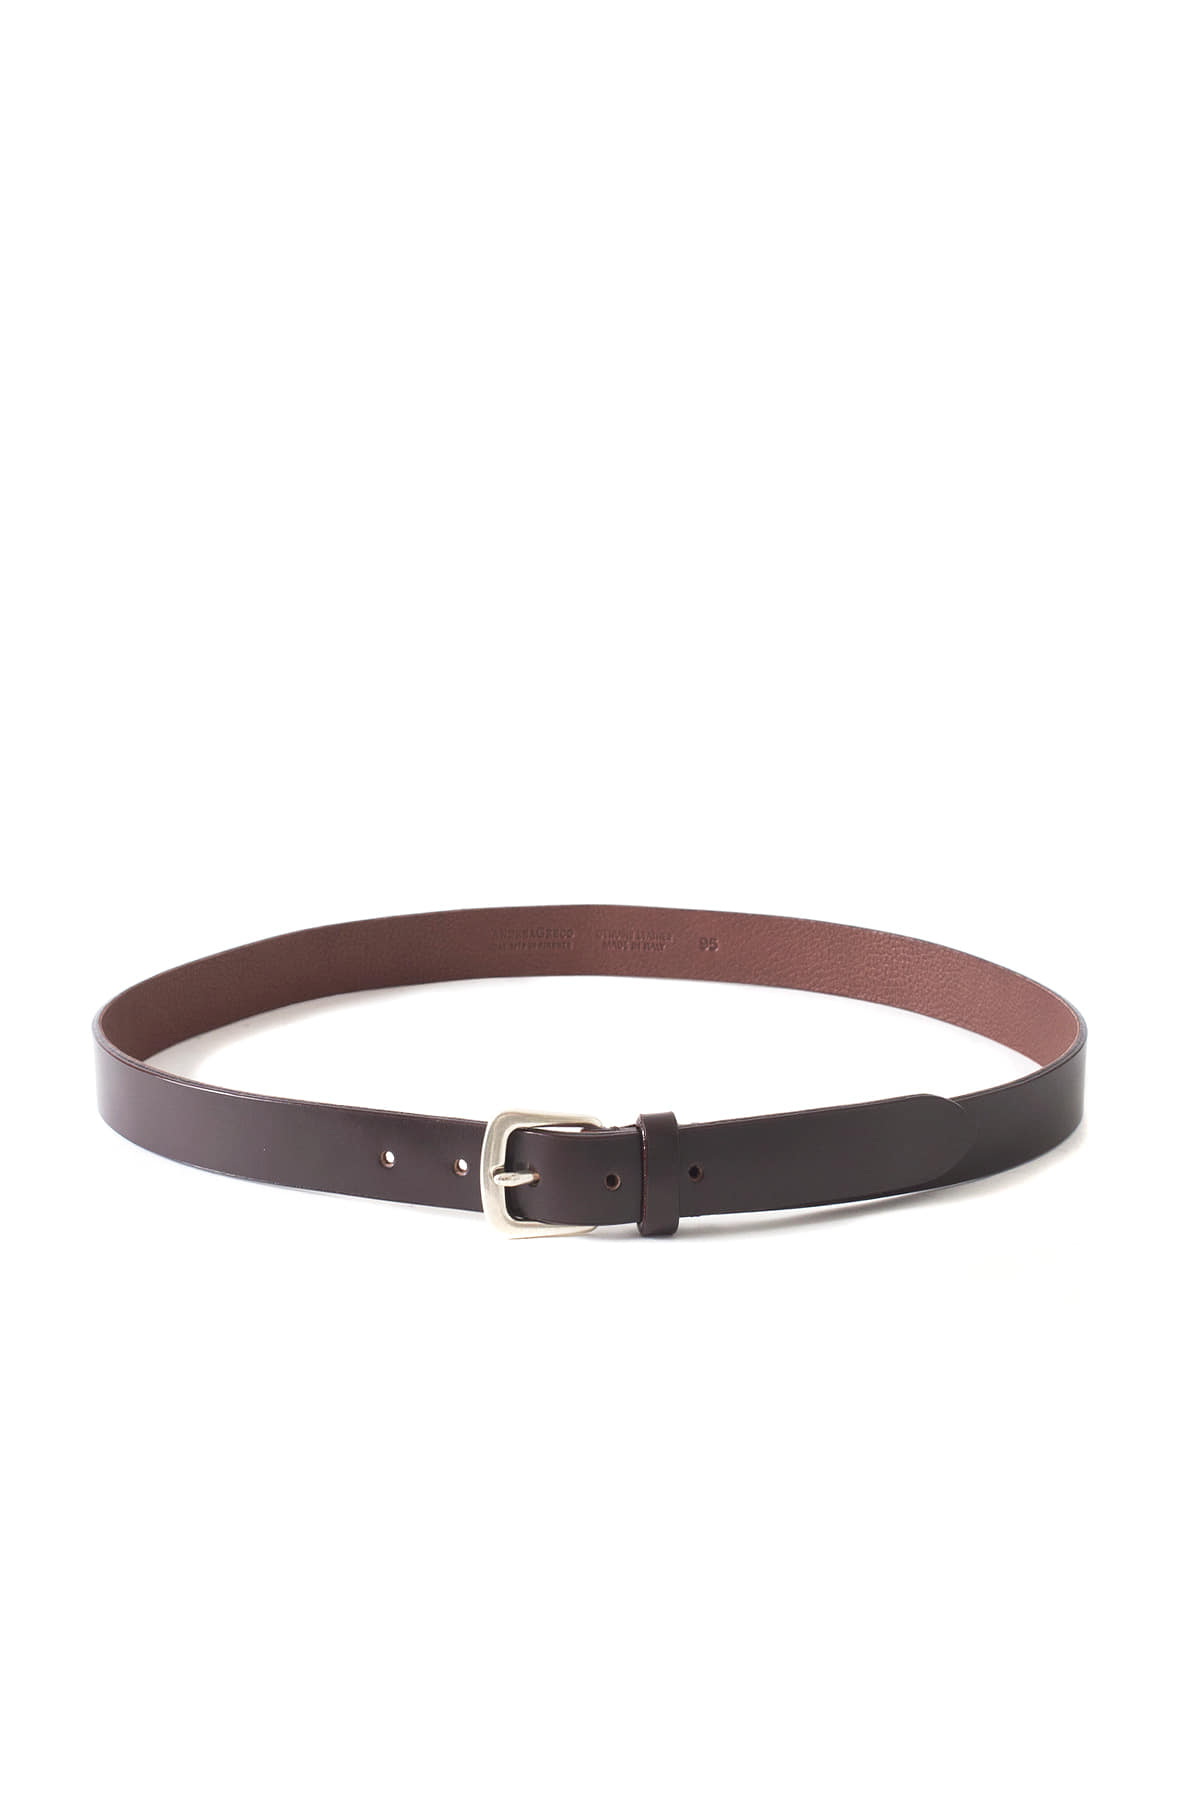 ANDREA GRECO : Dakota Calf Leather Belt (Avana)